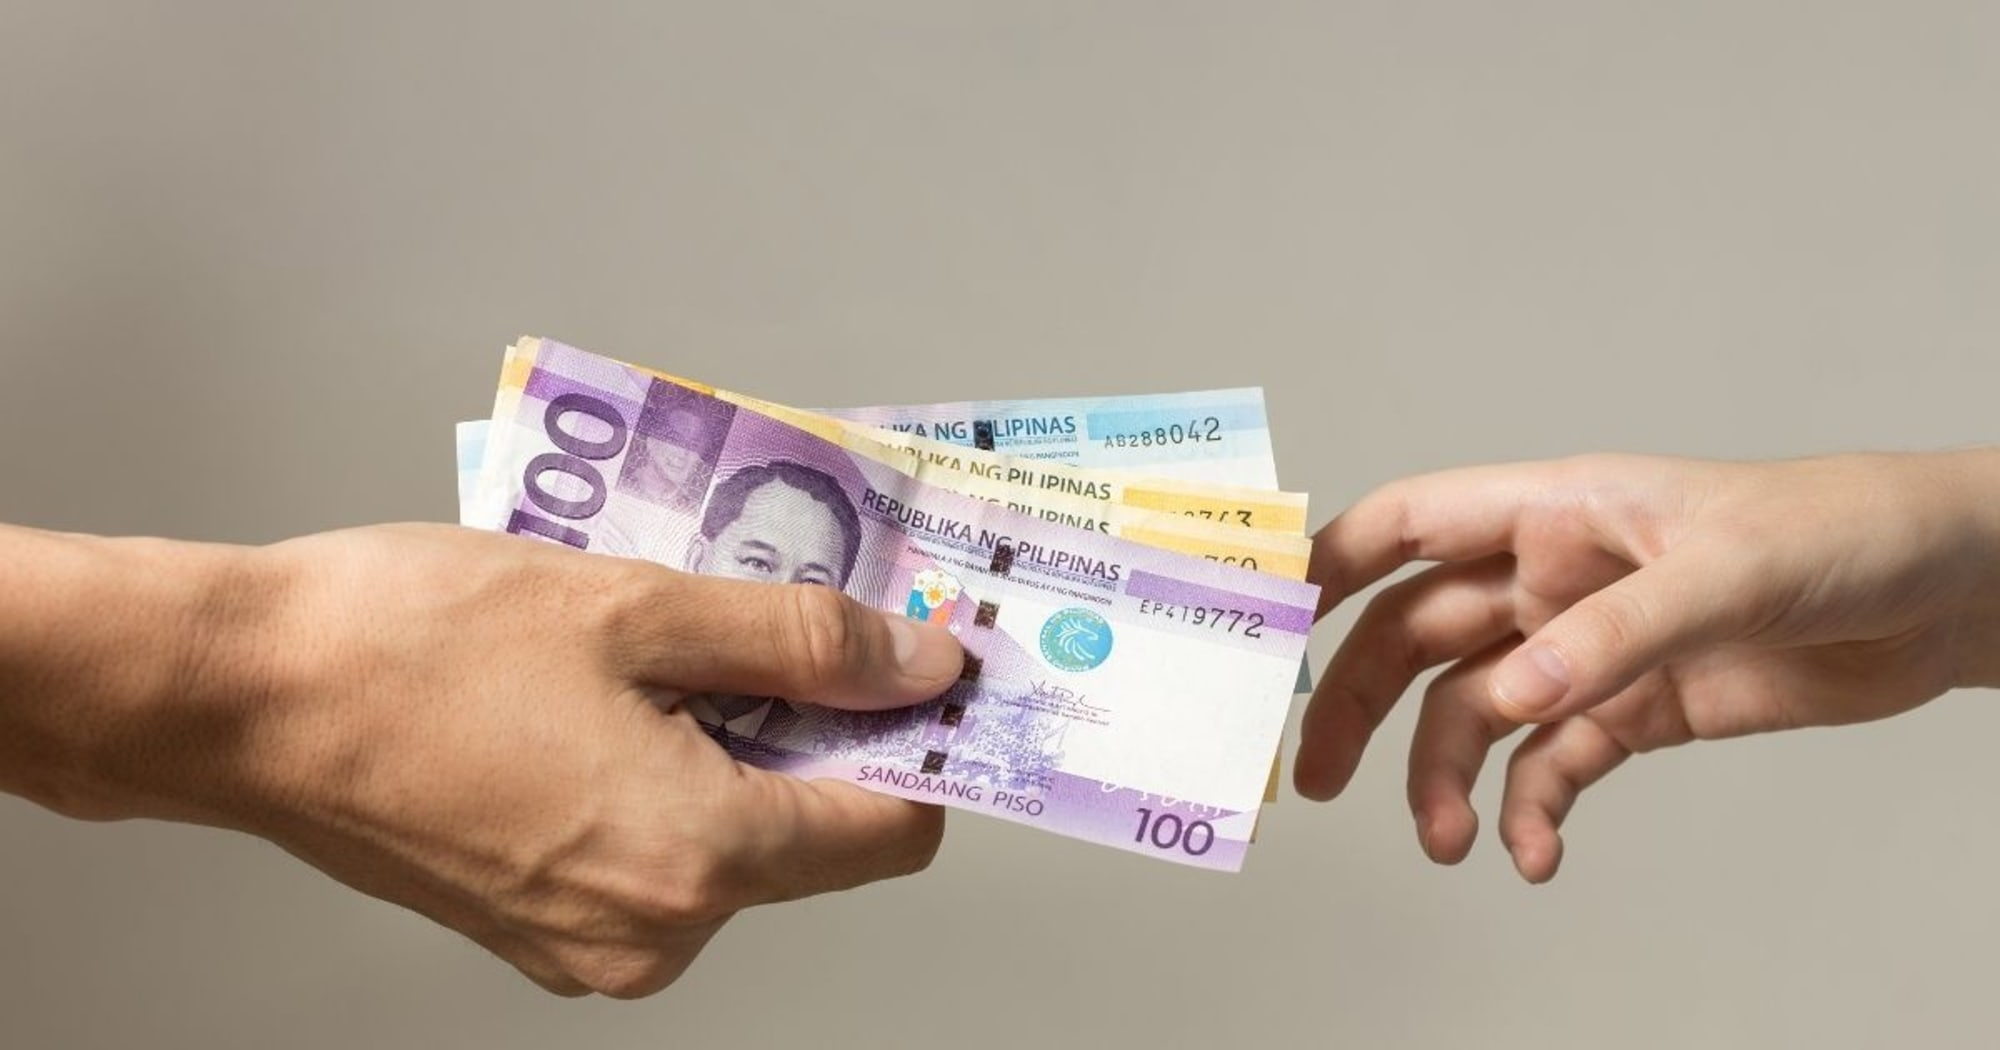 Cash aid worth 221M approved for 44K tourism workers in Western Visayas